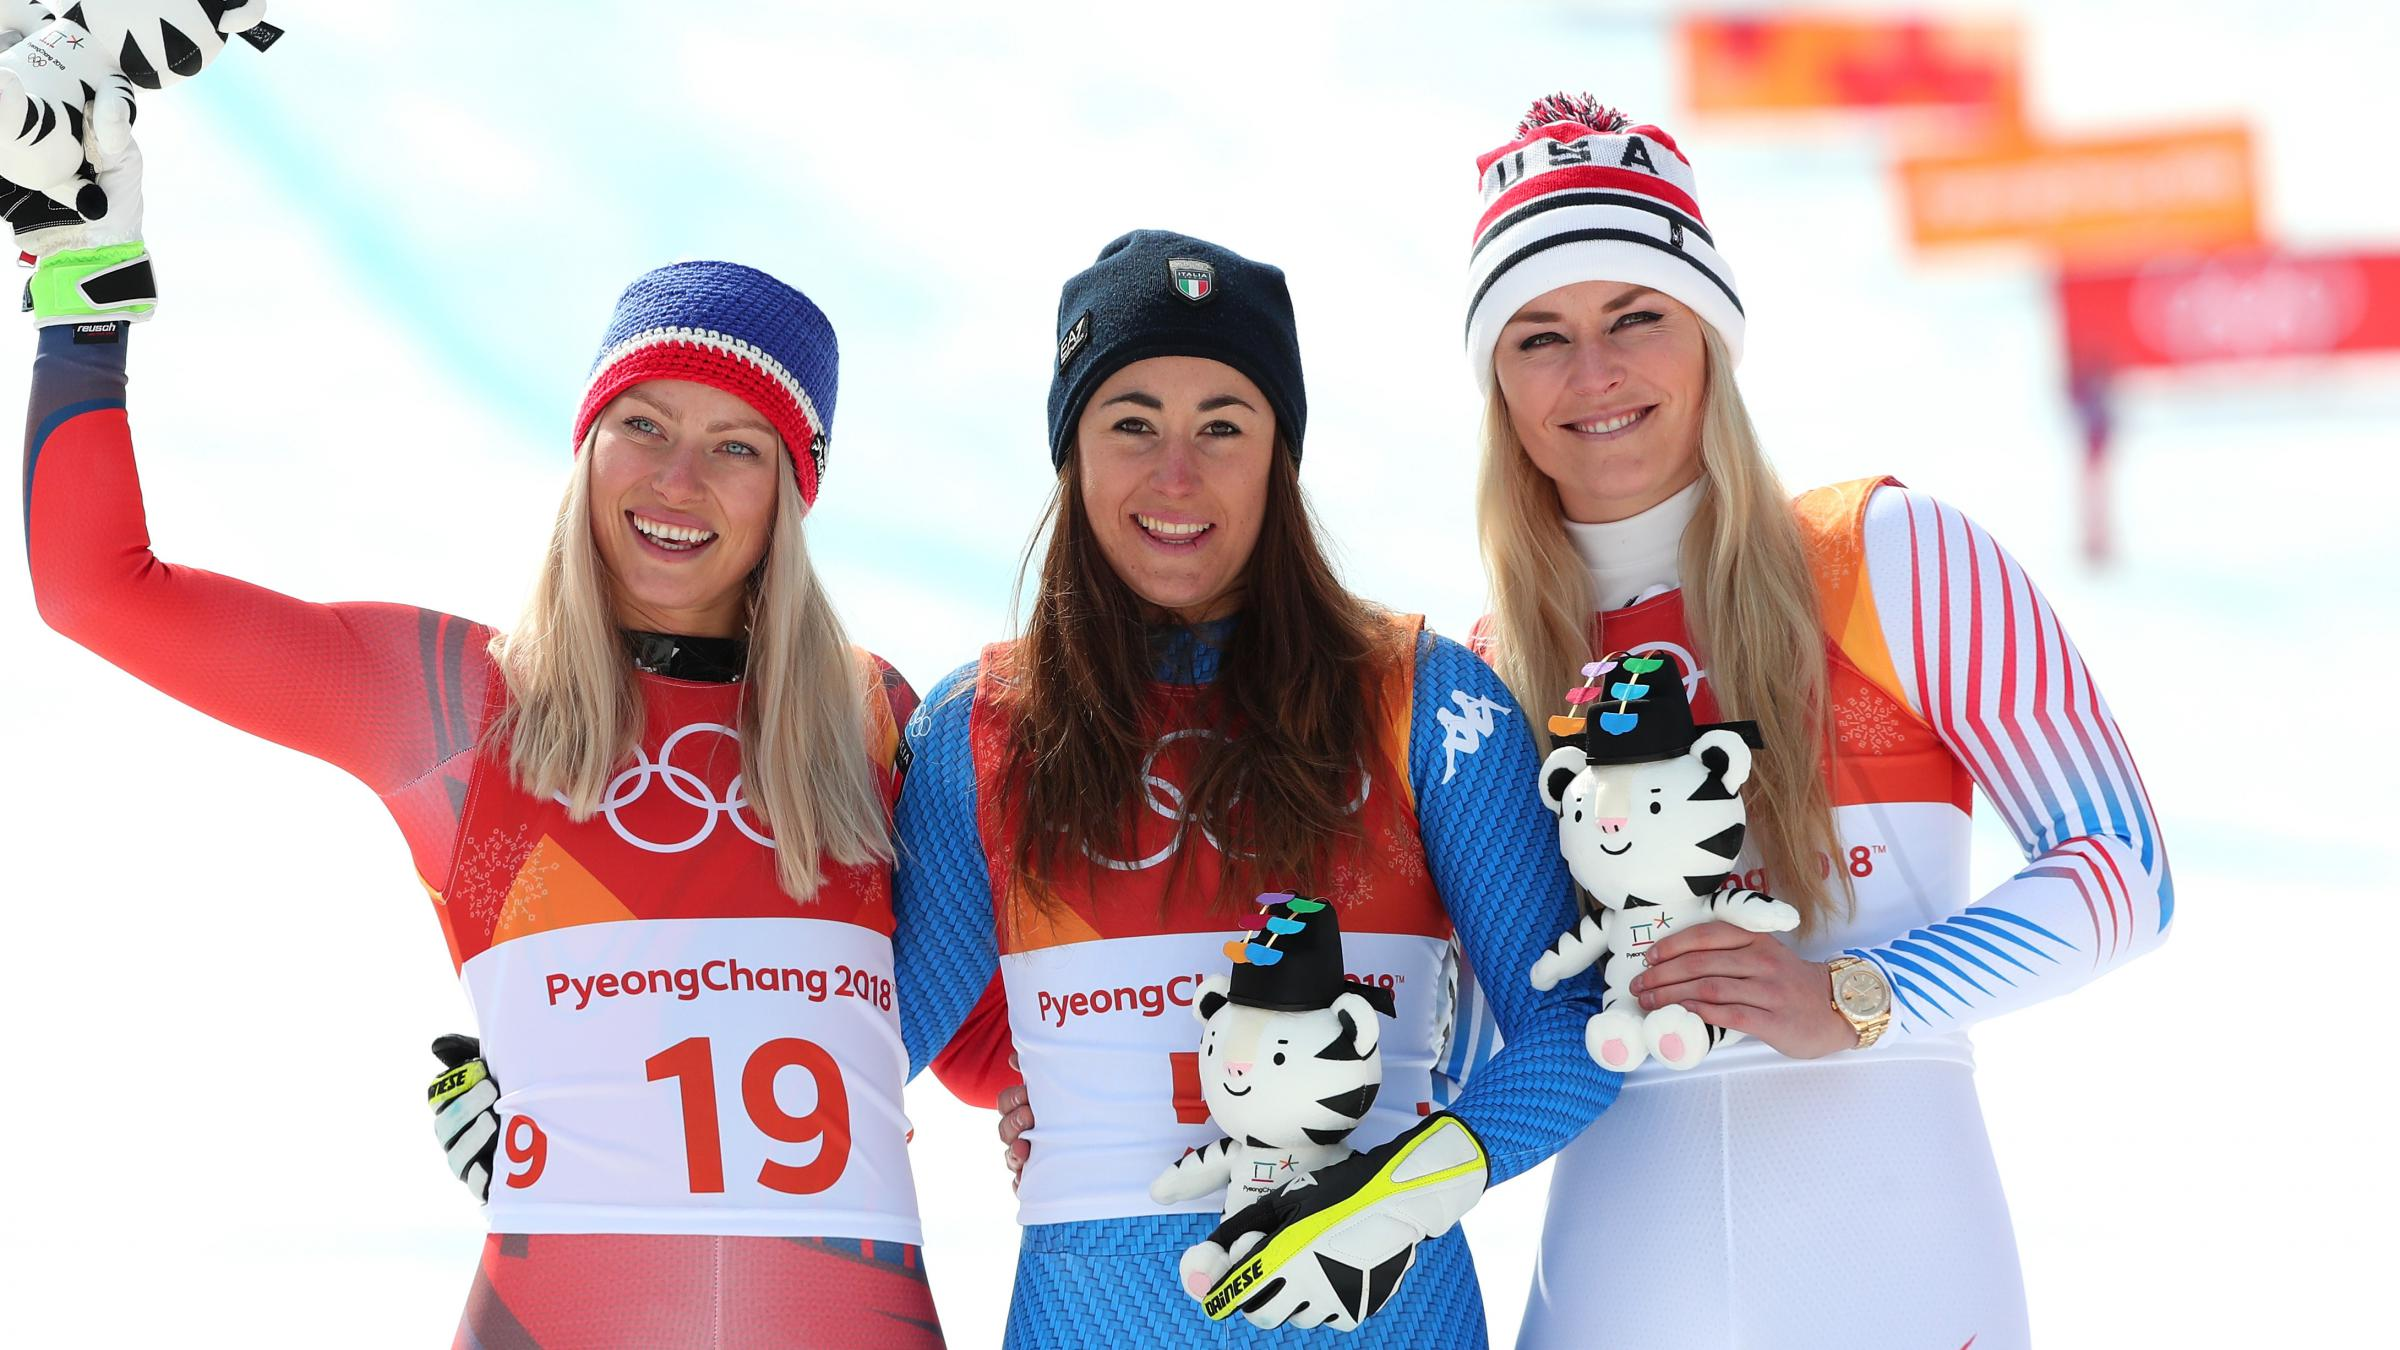 Olympics: Lindsey Vonn Gets Emotional After Medaling in Final Downhill Race